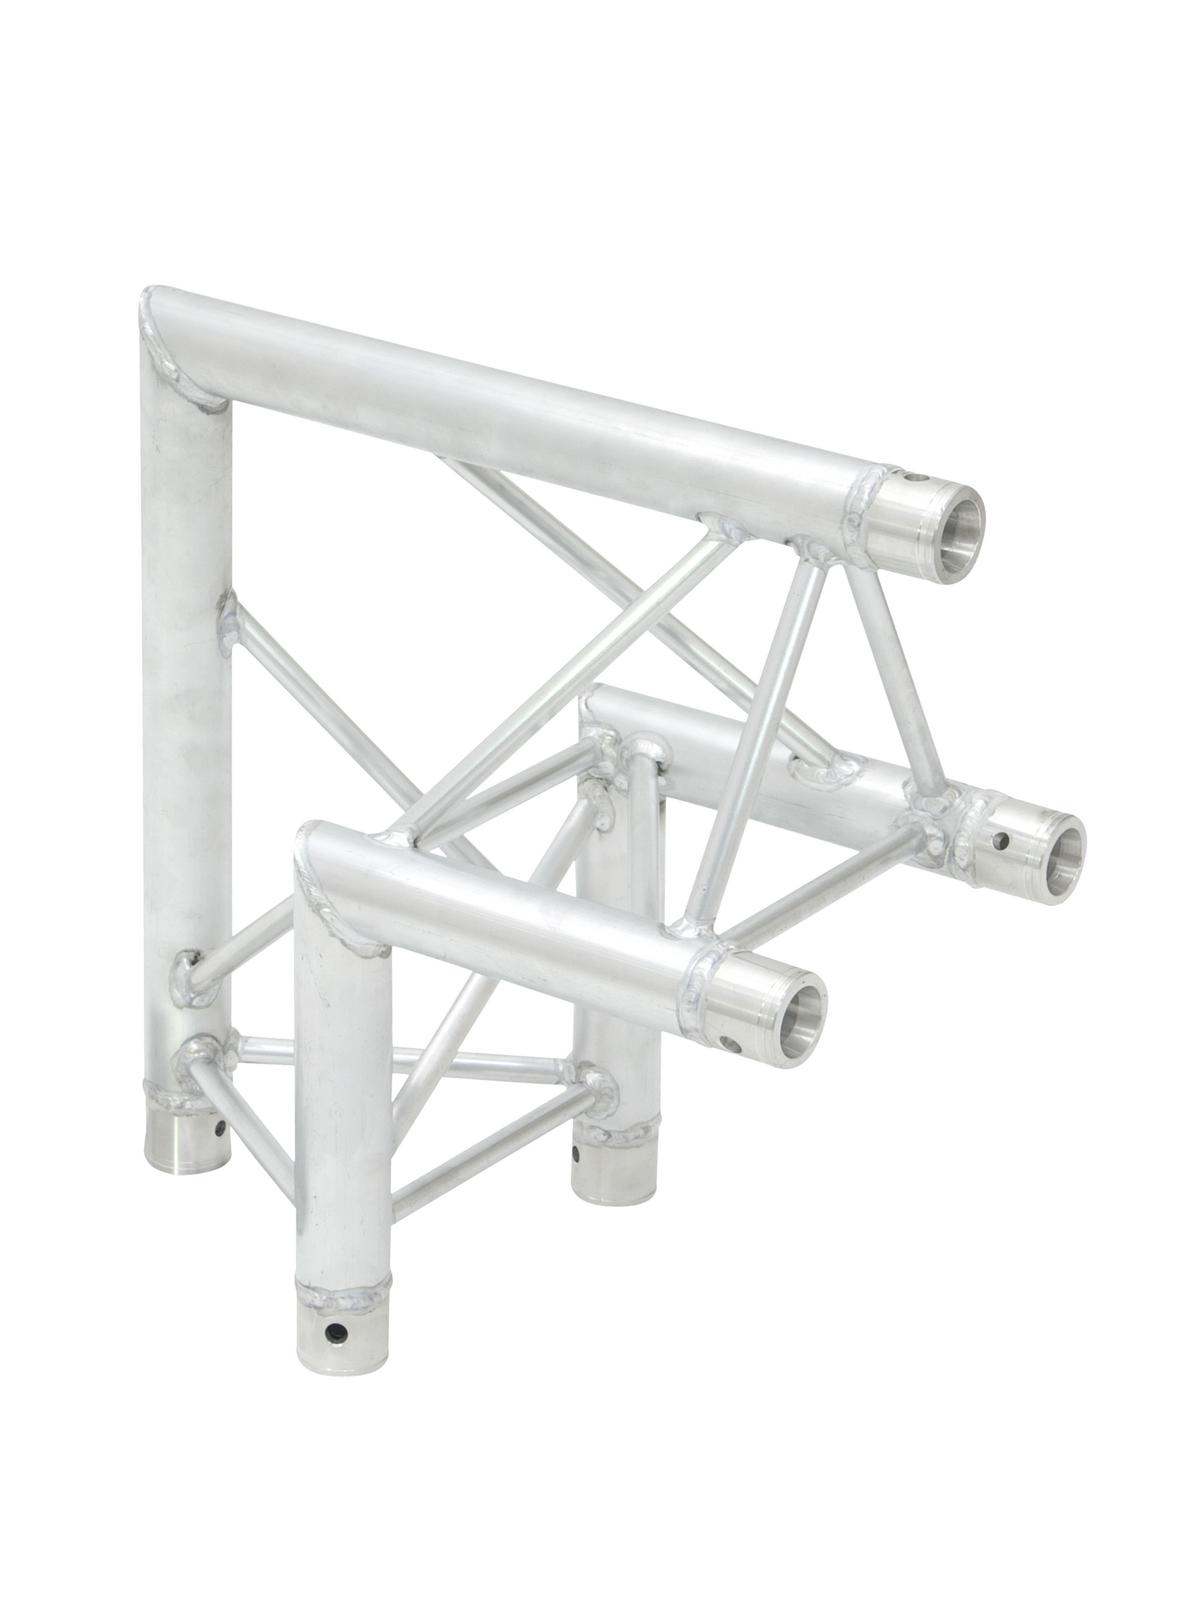 ALUTRUSS TRILOCK E-GL33 C-24 2